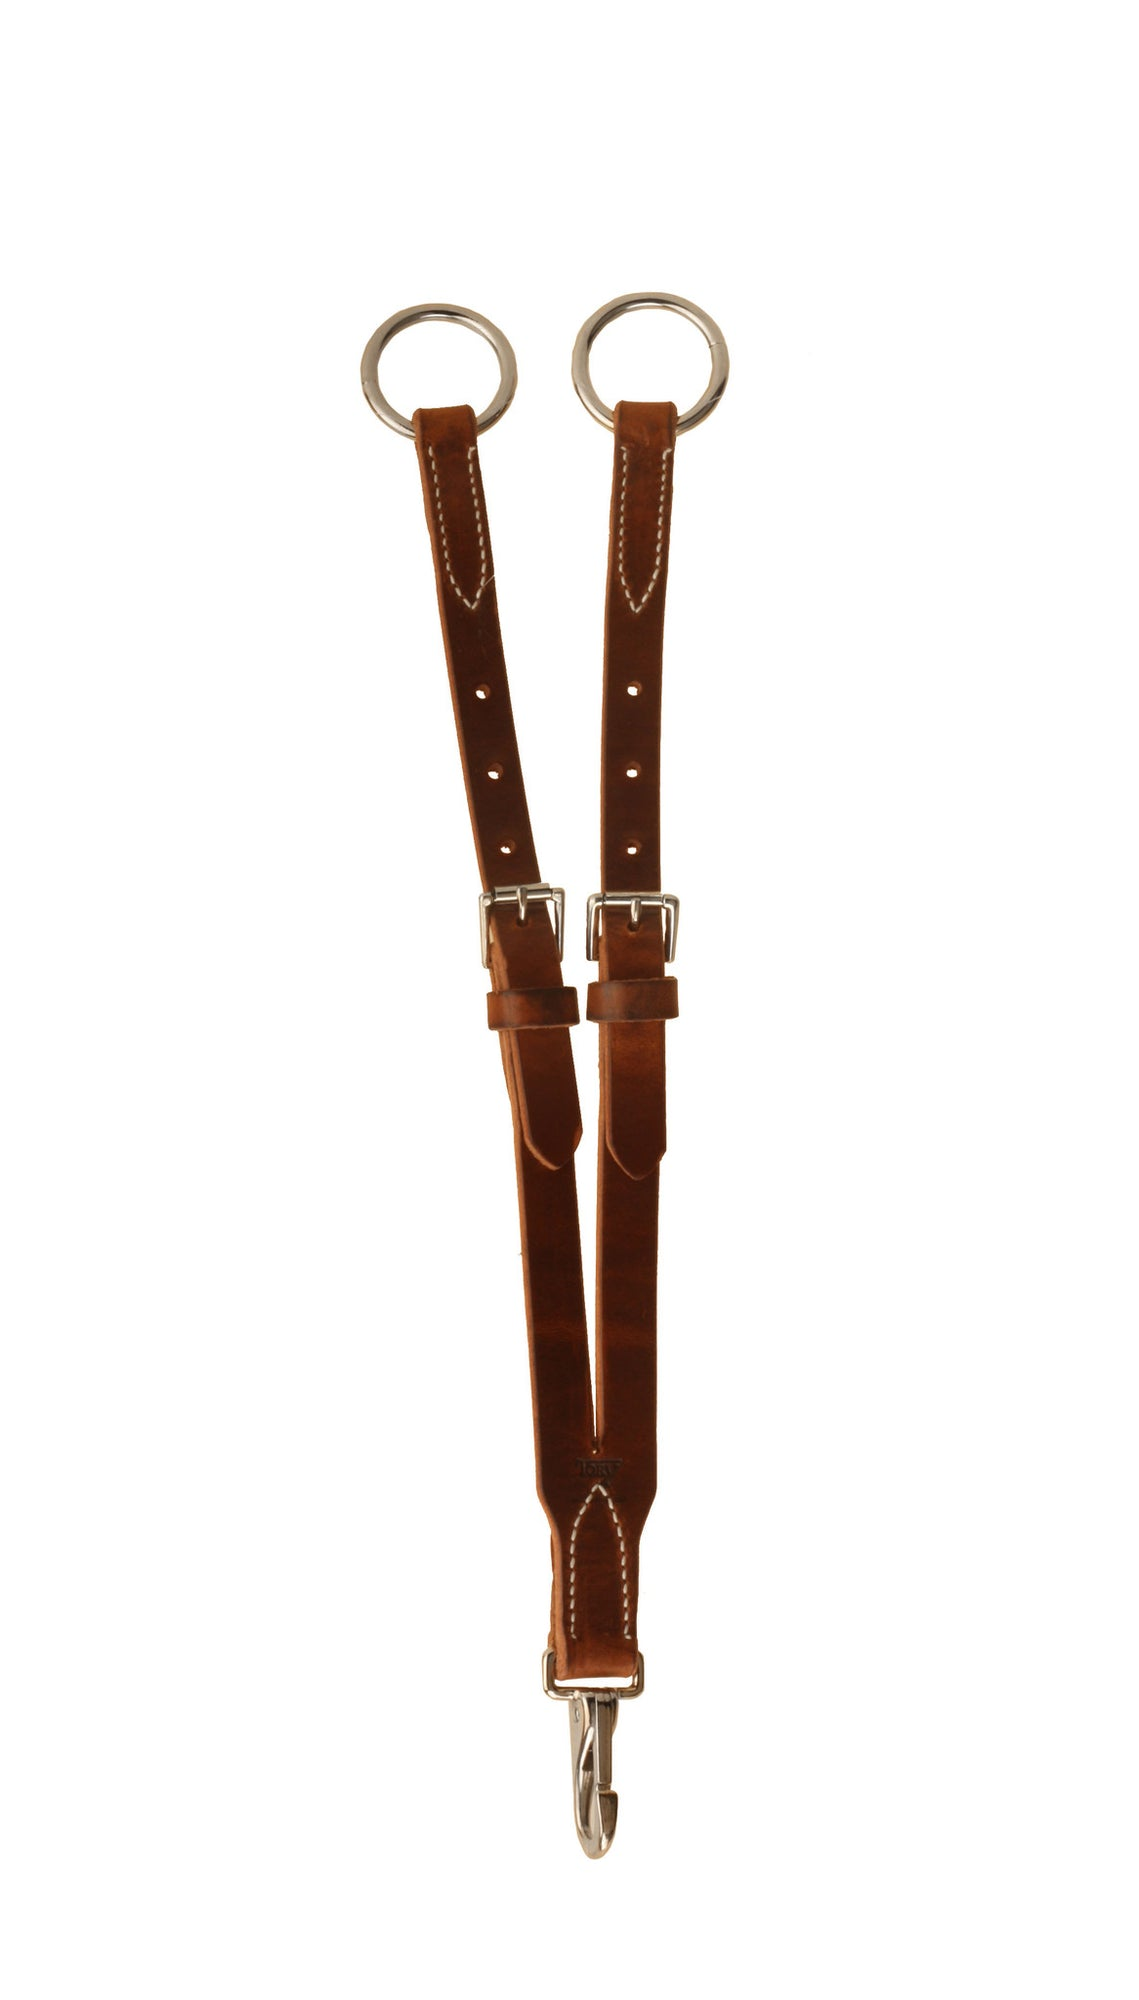 Tory Leather Harness Leather Short Training Fork